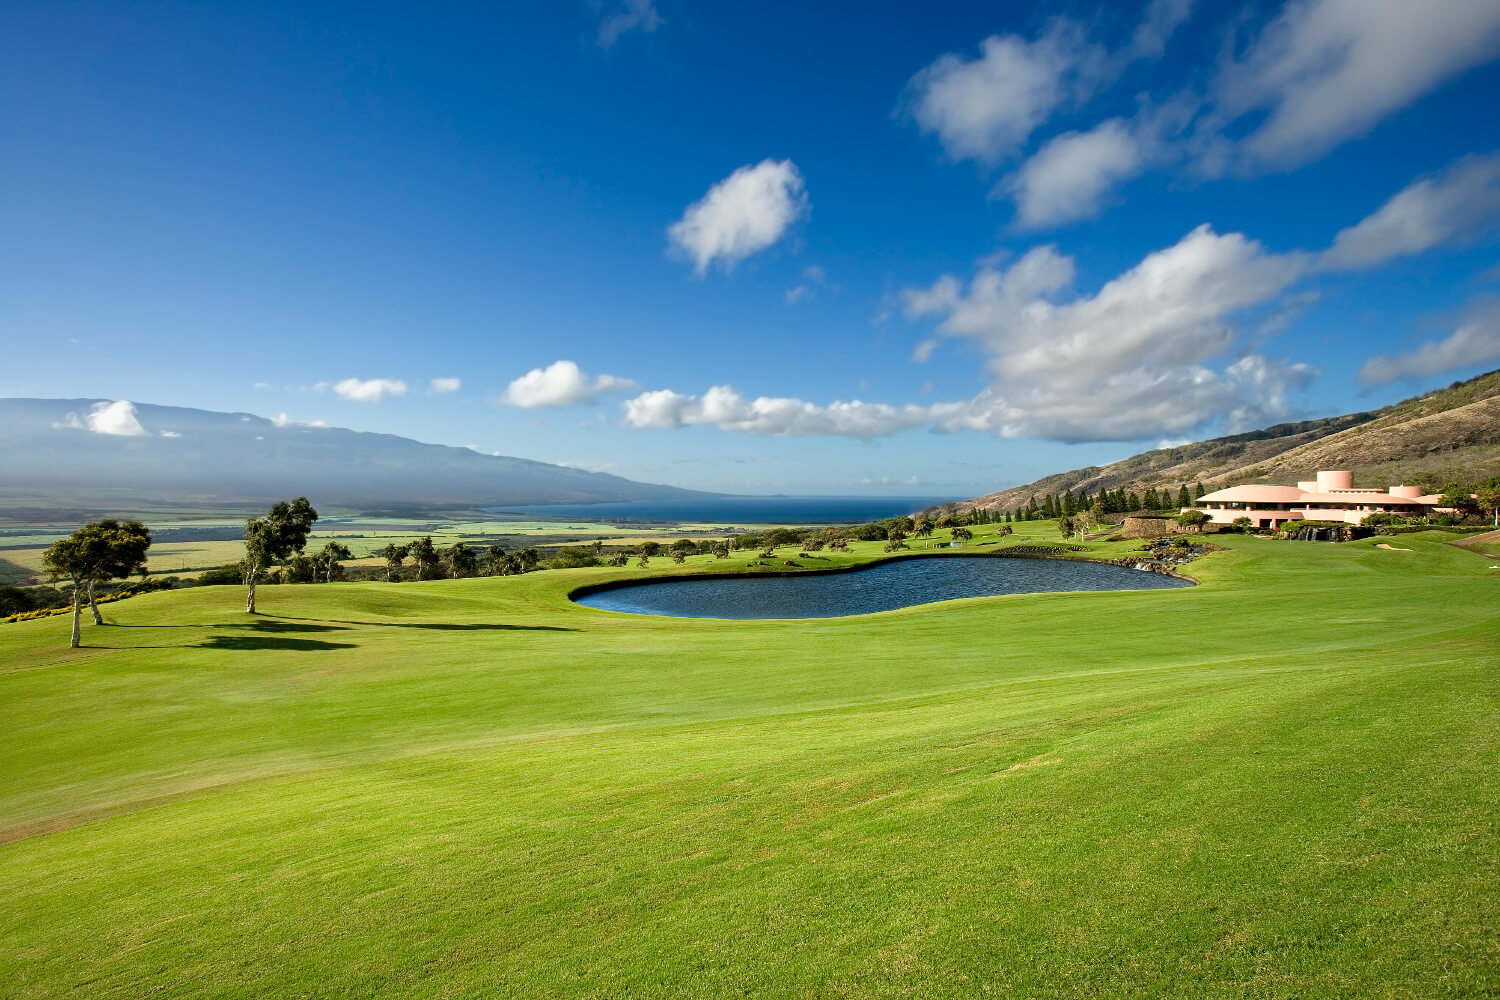 The King Kamehameha Golf Club - Wailuku, Maui, HI